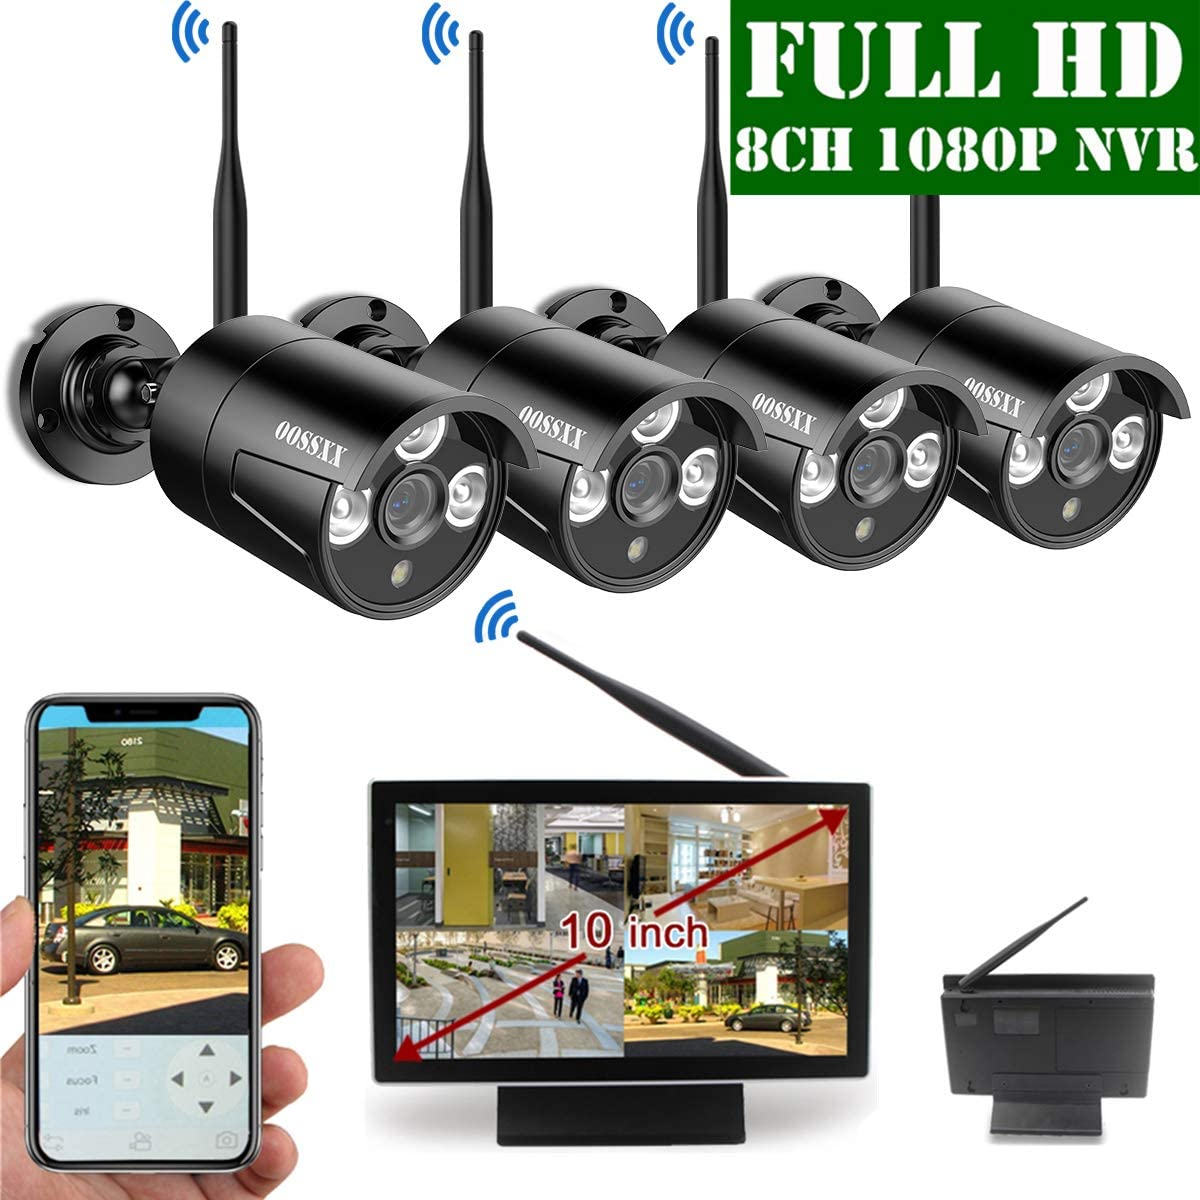 2019 Update 10 inch Screen HD 1080P 8-Channel Outdoor Wireless Security Camera System,4pcs 1080P Wireless IP67 Weatherproof IP Cameras,70FT Night Vision,P2P,App, NO Hard Drive